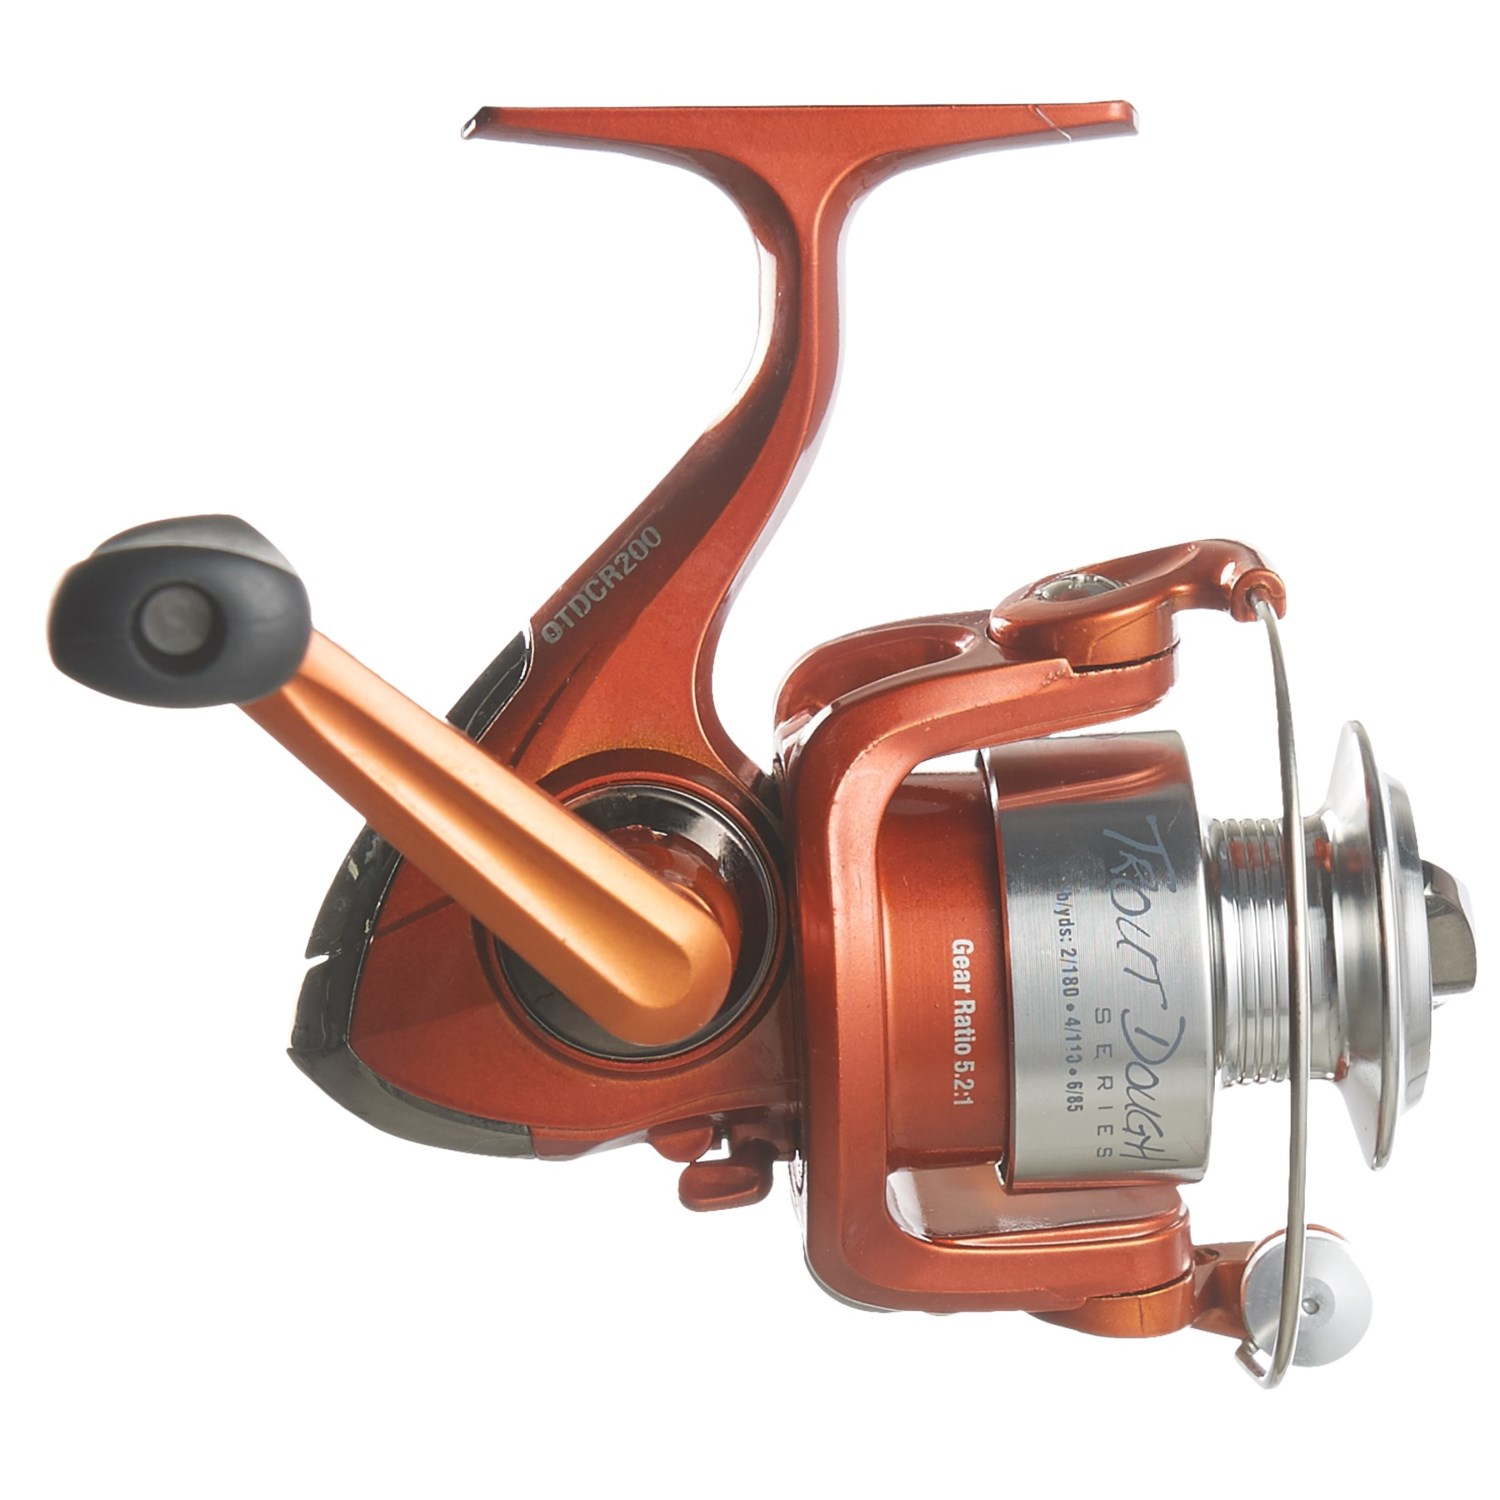 Berkley trout dough spinning rod reel combo 2 piece 7 for Trout fishing rod and reel